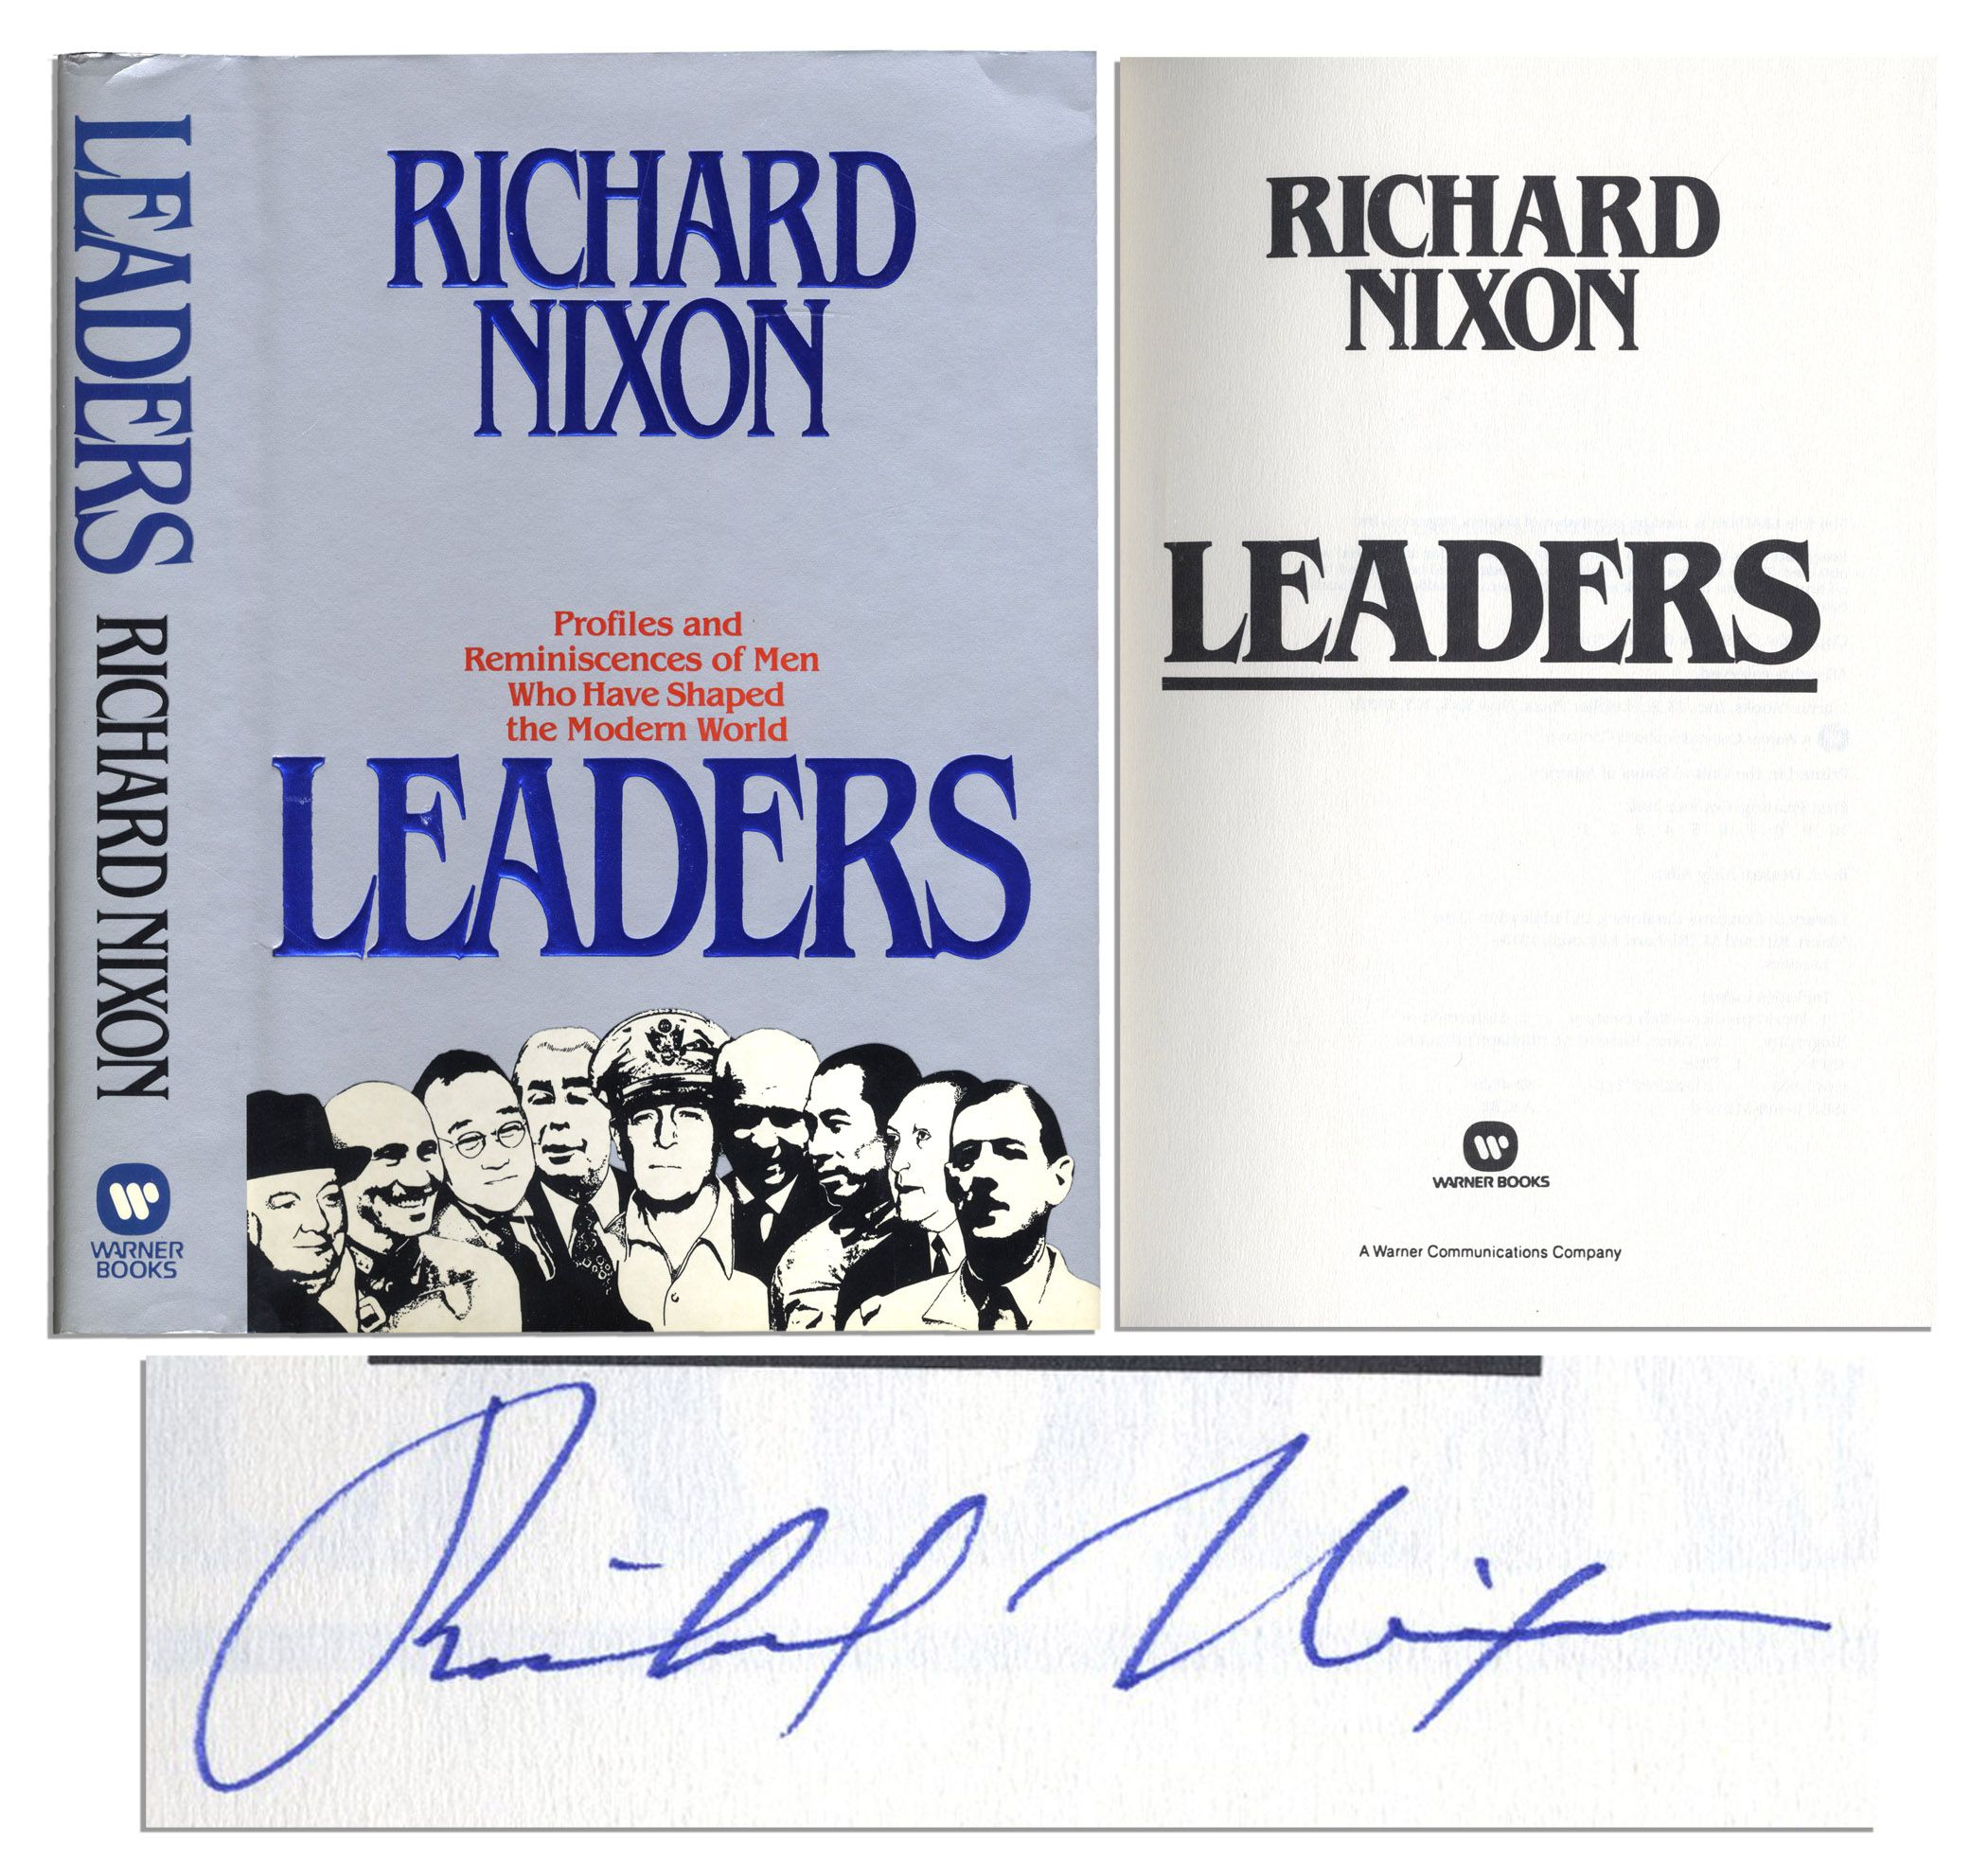 an analysis of our textbooks which has a lot of information on richard nixon In 1978, nixon published rn: the memoirs of richard nixon, an intensely personal examination of his life, public career and white house years the book became a best-seller he also authored .